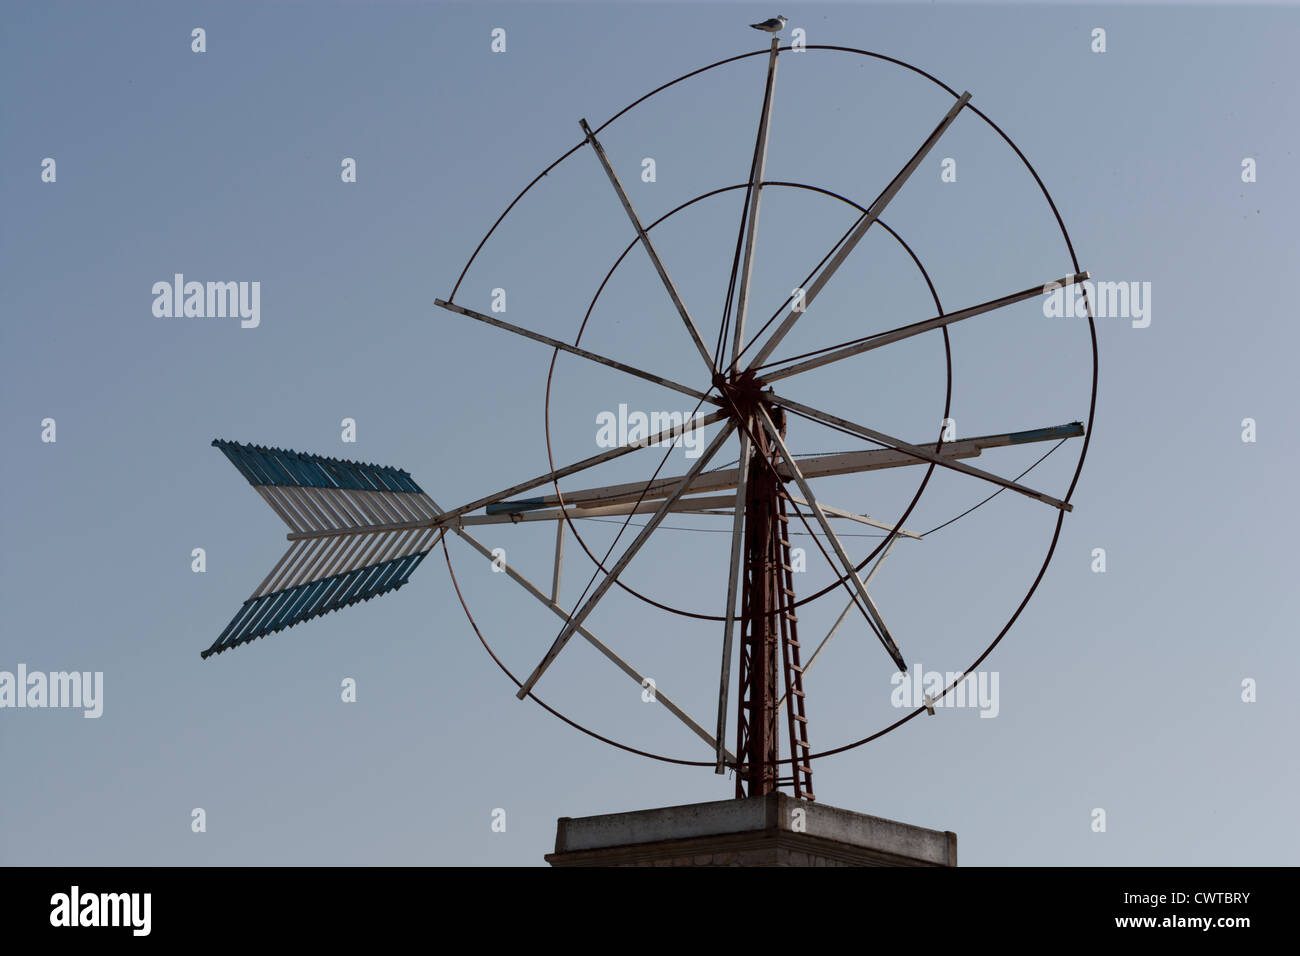 Spanish windmill water pump in a state of disrepair - Stock Image